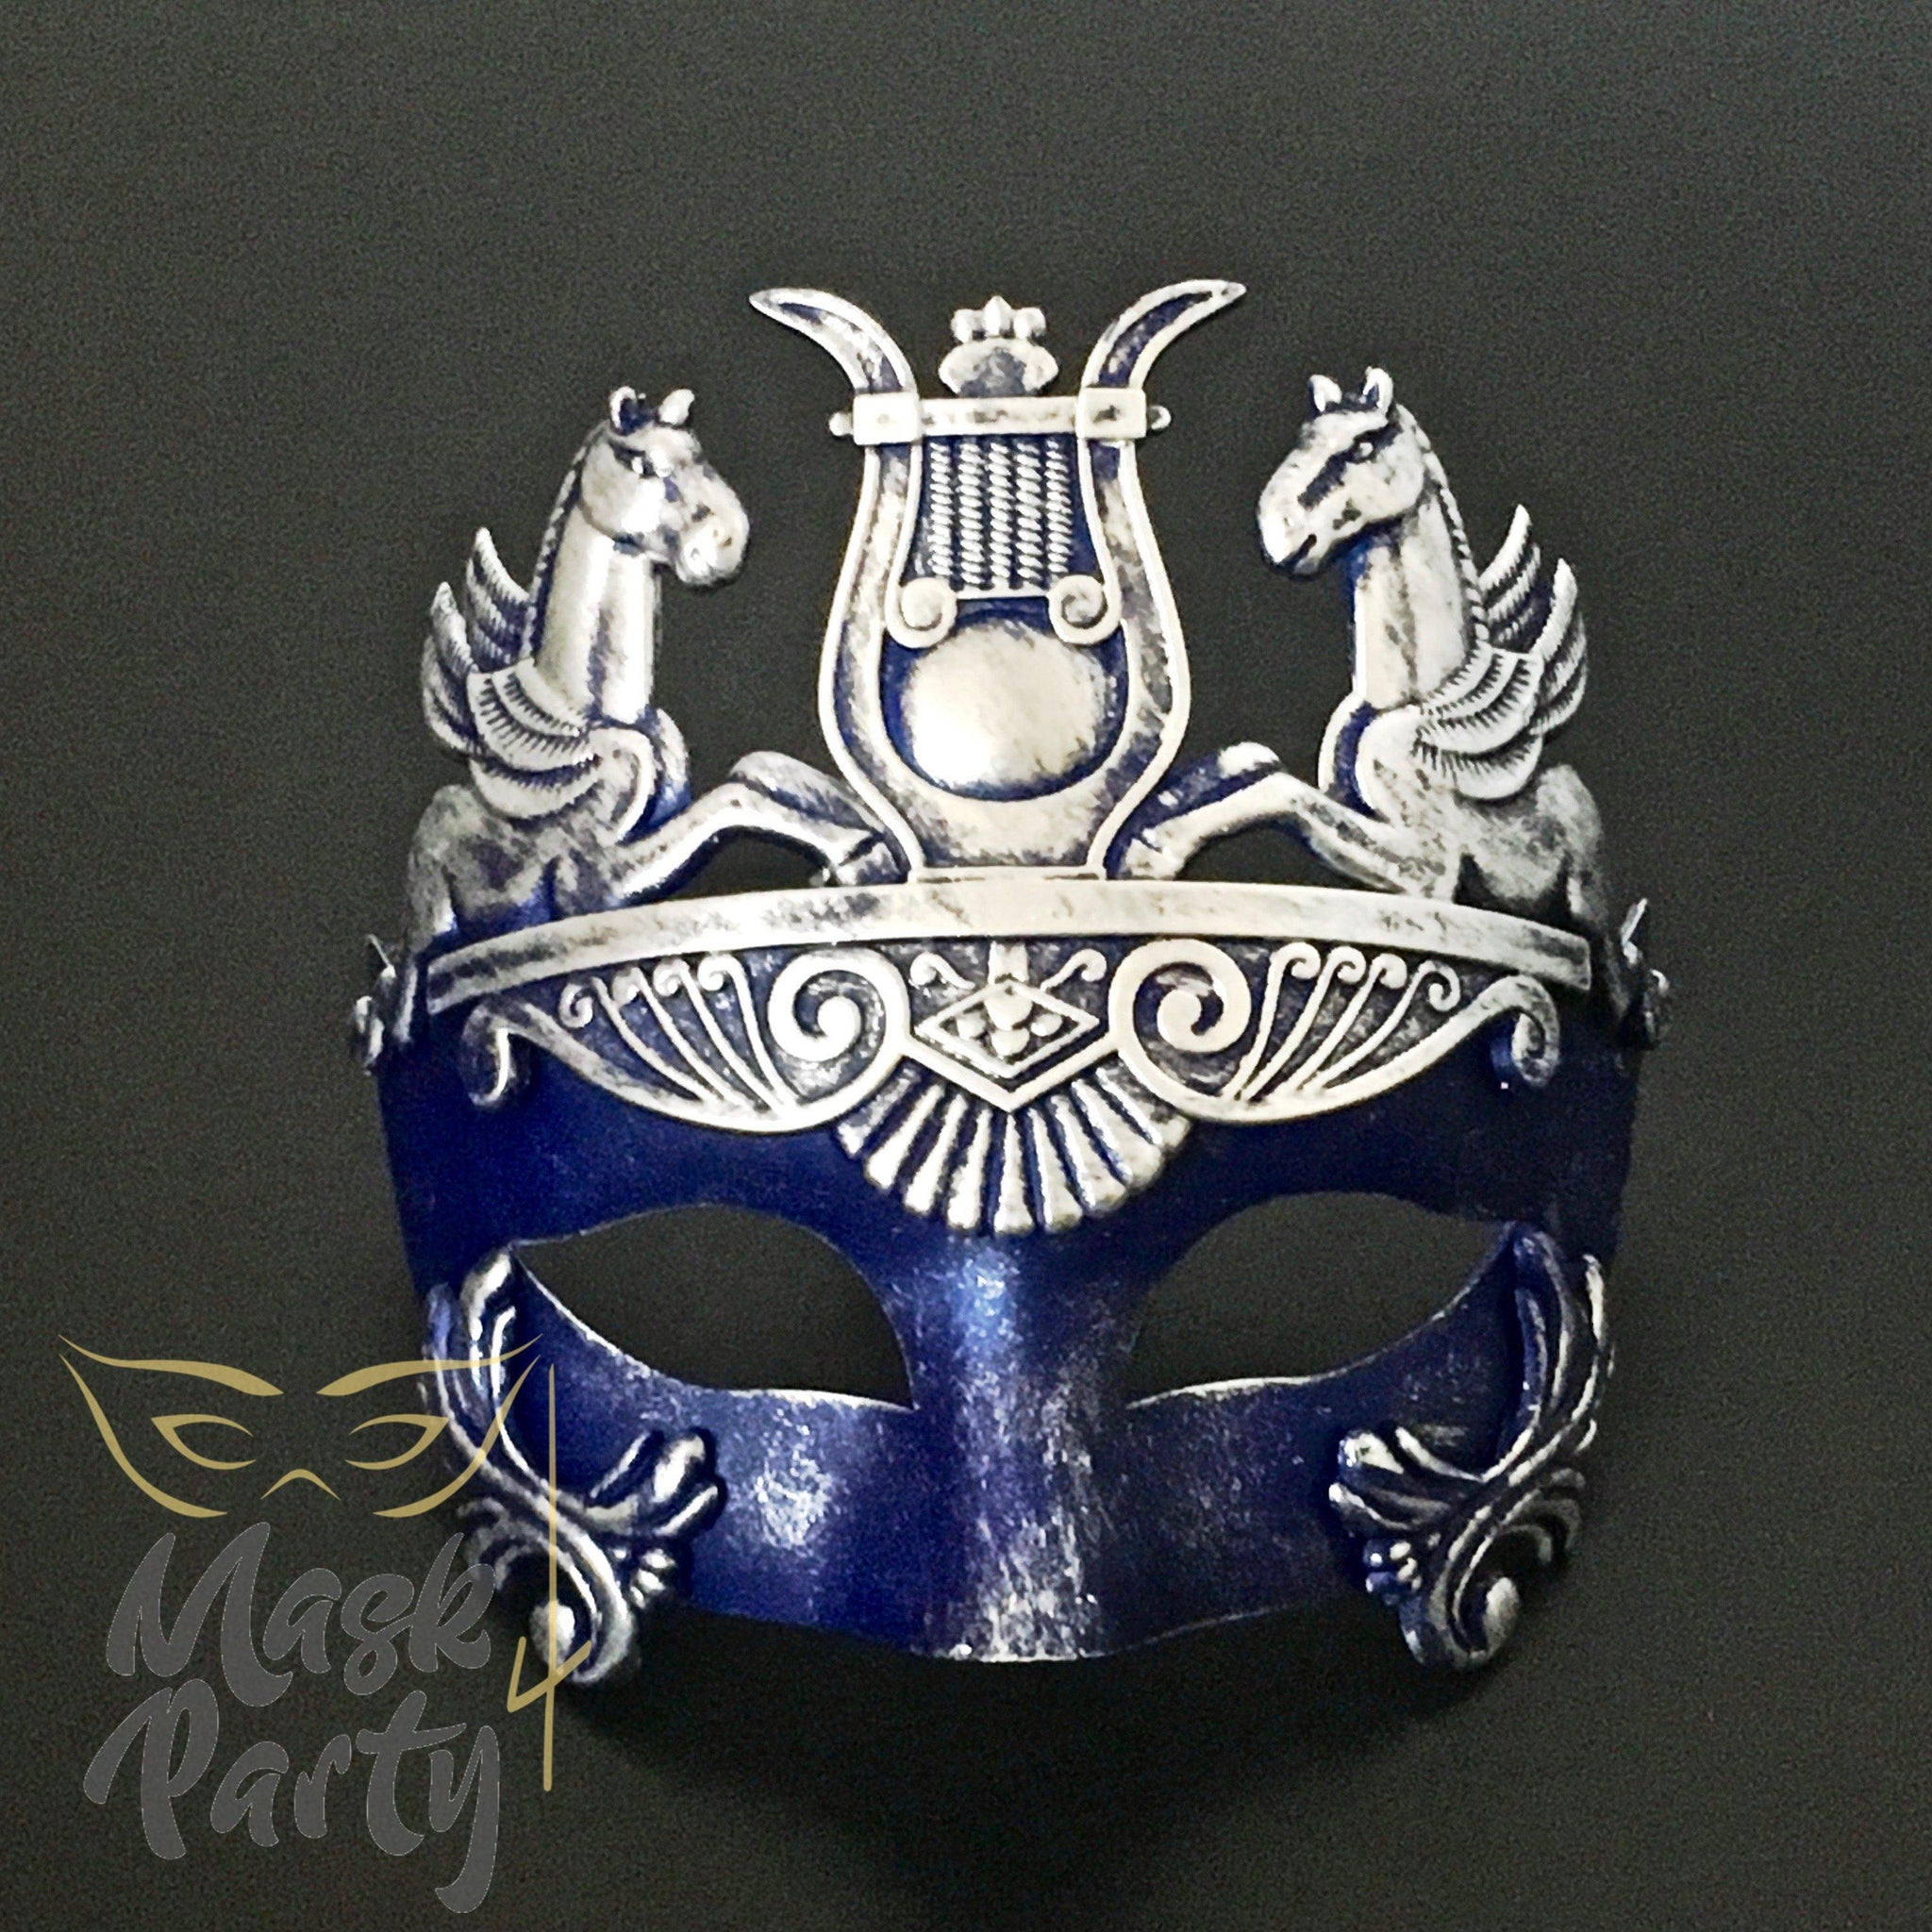 Masquerade Mask - Venetian Greek Mask - Blue/Silver - Mask4Party